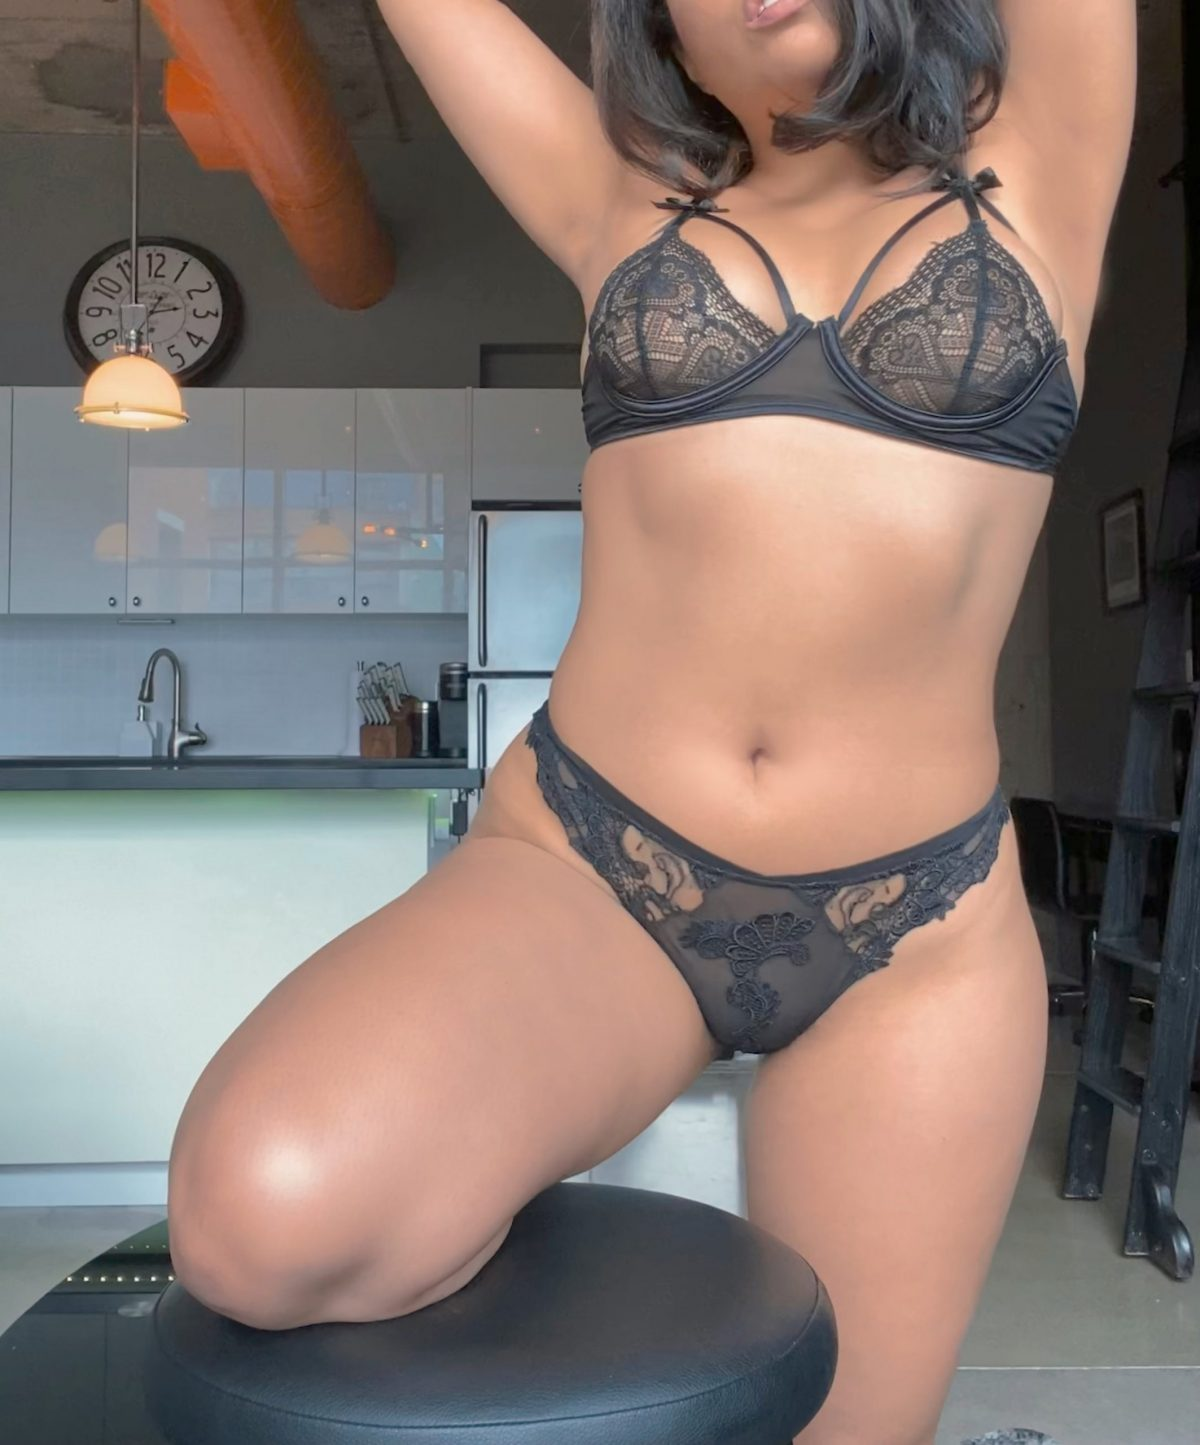 Toronto escorts companion upscale Francesca Duo Disability-friendly Non-smoking Young Curvy Petite Enhanced Raven-Haired Brunette Latina Small New